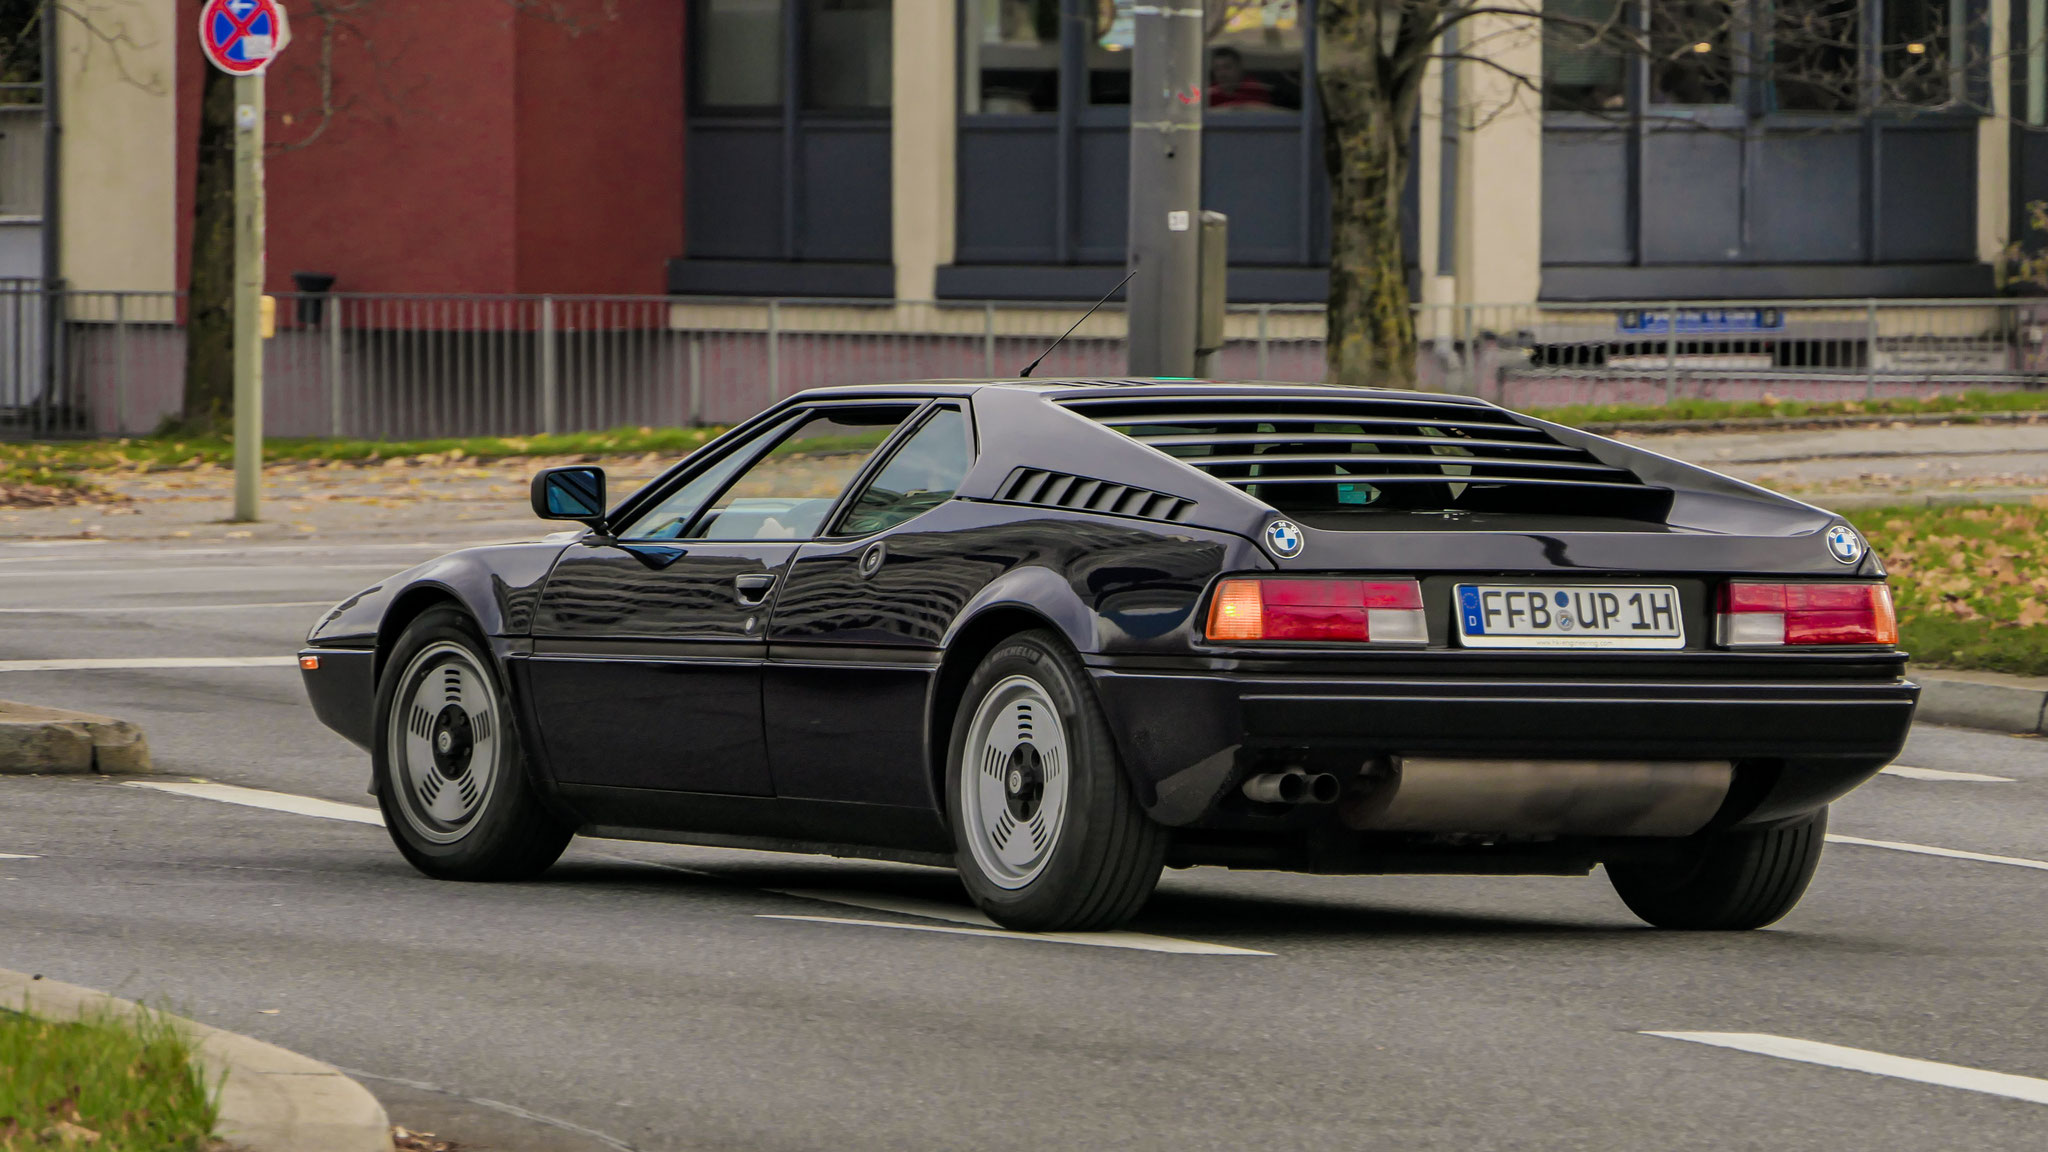 BMW M1 - FFB-UP-1H